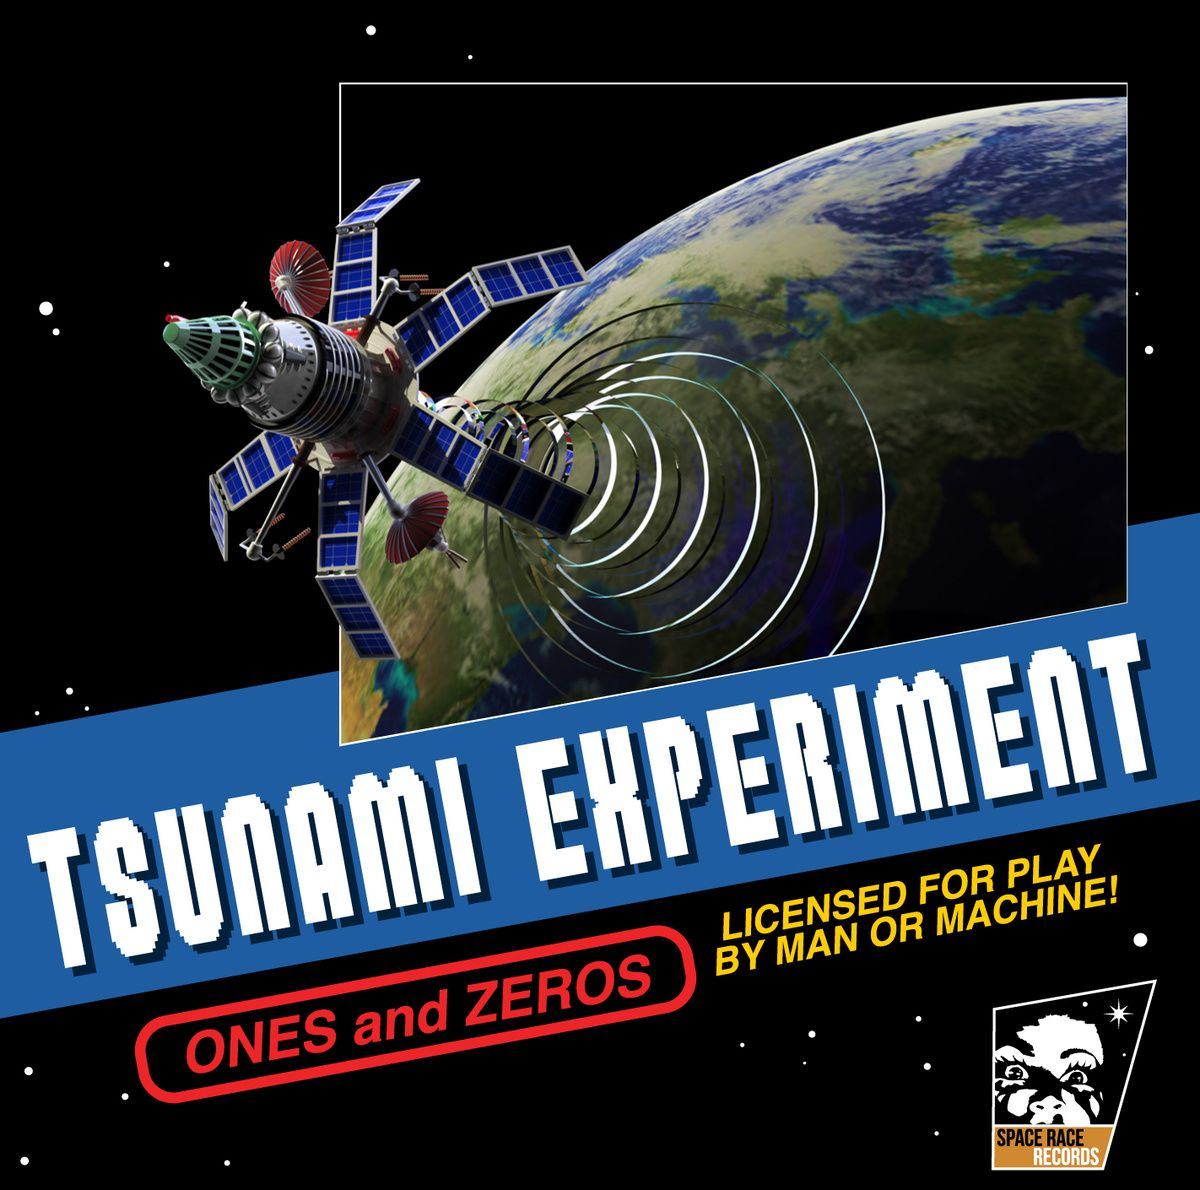 The Tsunami Experiment - Ones and Zeros